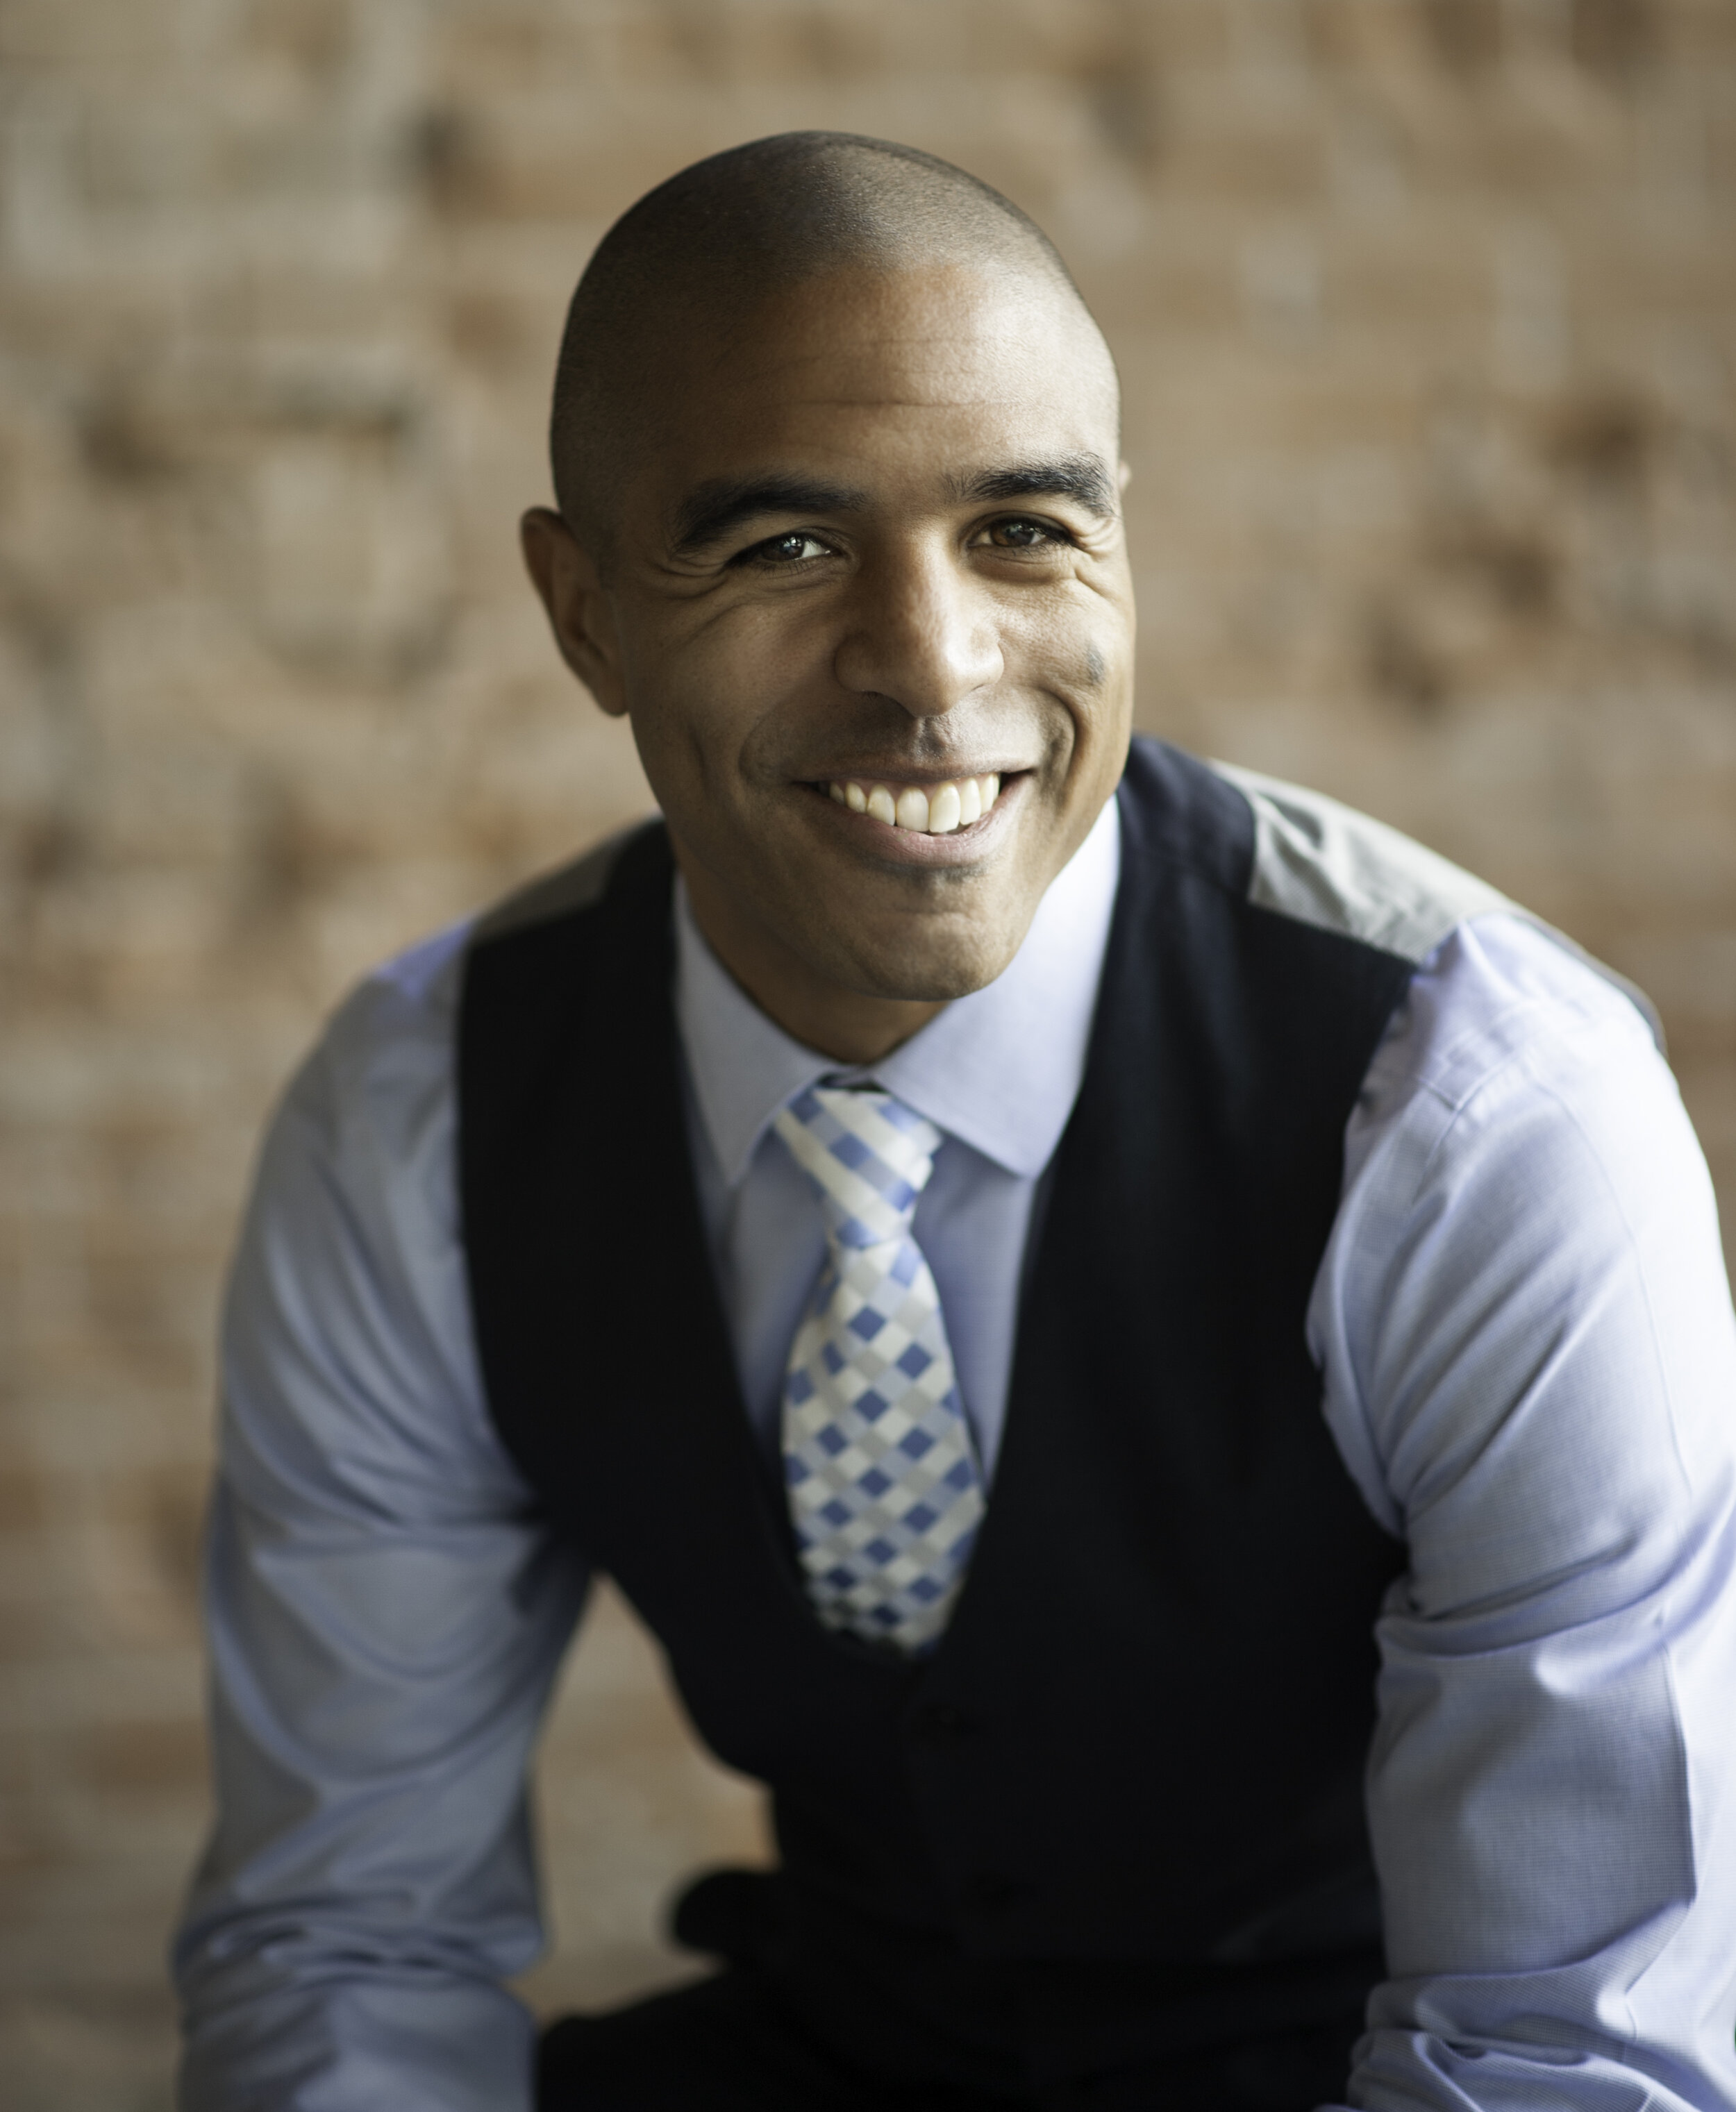 Eric M. Bailey - Eric M. Bailey is a bestselling author and President of Bailey Strategic Innovation Group, one of the fastest-growing human communication consulting firms in the United States. Eric has a Master's Degree in Leadership and Organizational Development from Saint Louis University and is a lifetime learner of human and organizational behavior and has been featured on CNN, Huffington Post, Forbes, and Like a Real Boss Podcast.Eric works with Google Inc, the US Air Force, Los Angeles County, the City of St. Louis, MO, Phoenix Police Department and many more.